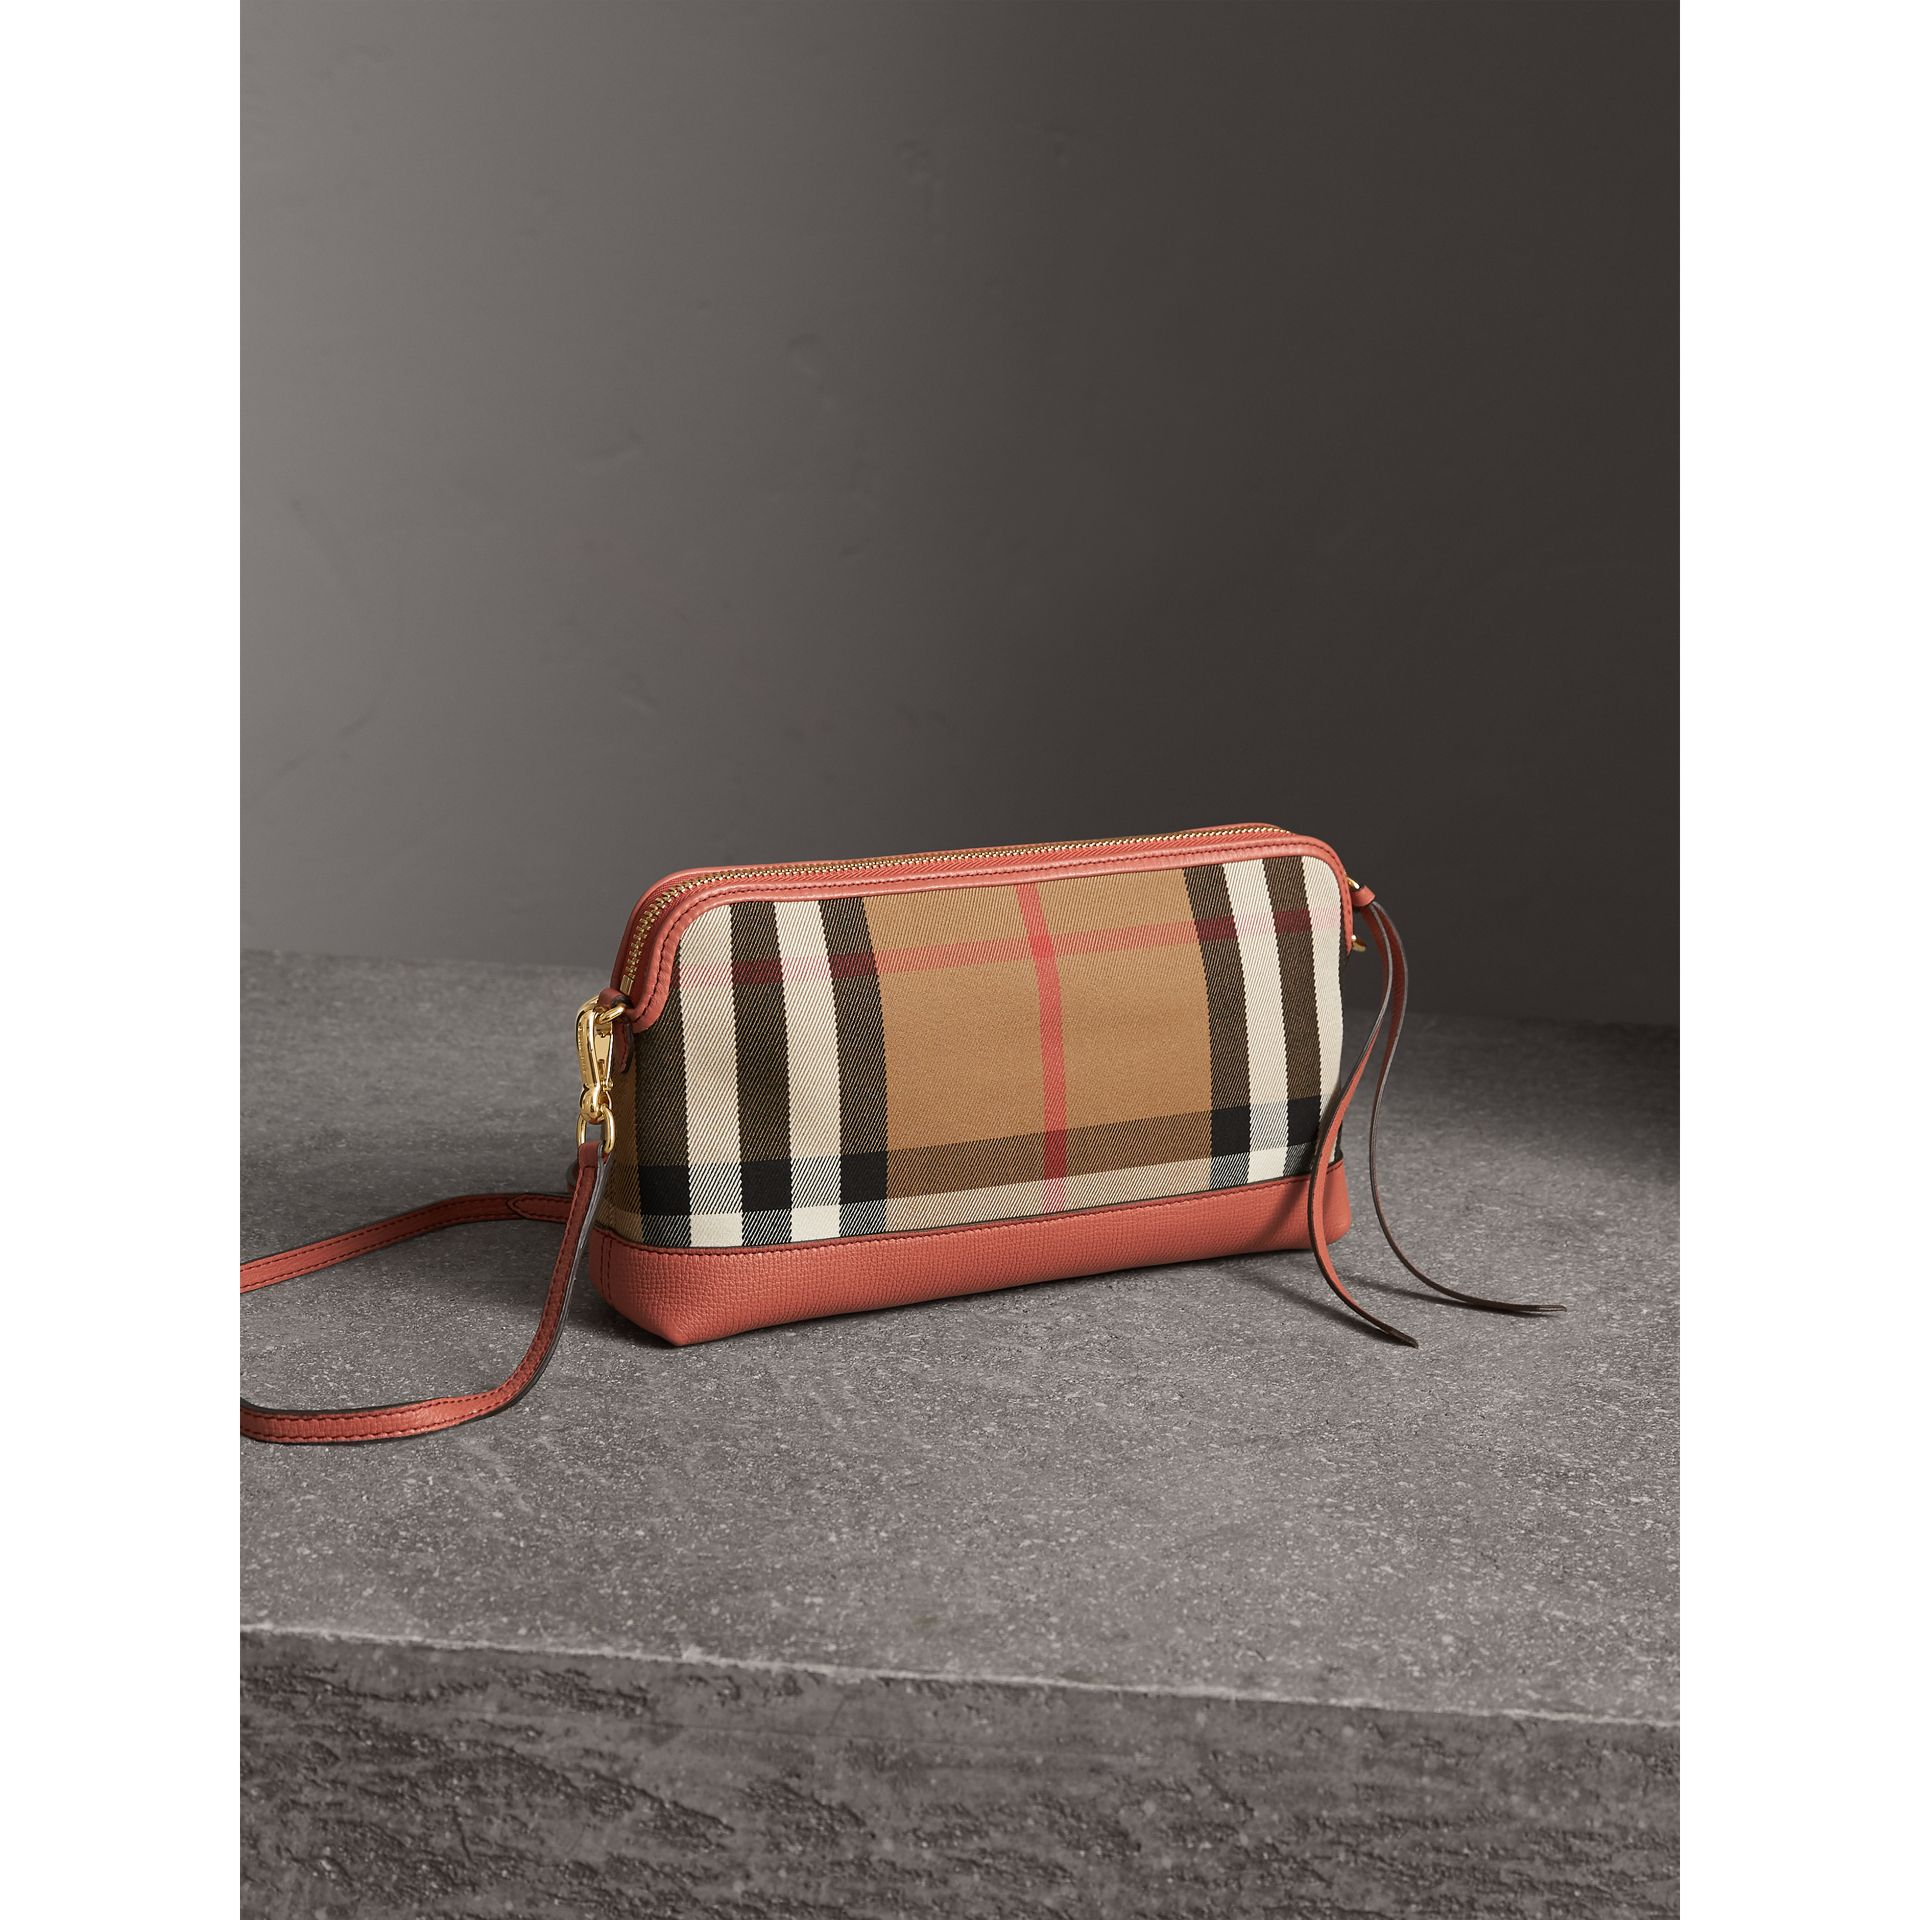 House Check and Leather Clutch Bag in Cinnamon Red - Women | Burberry Singapore - gallery image 5